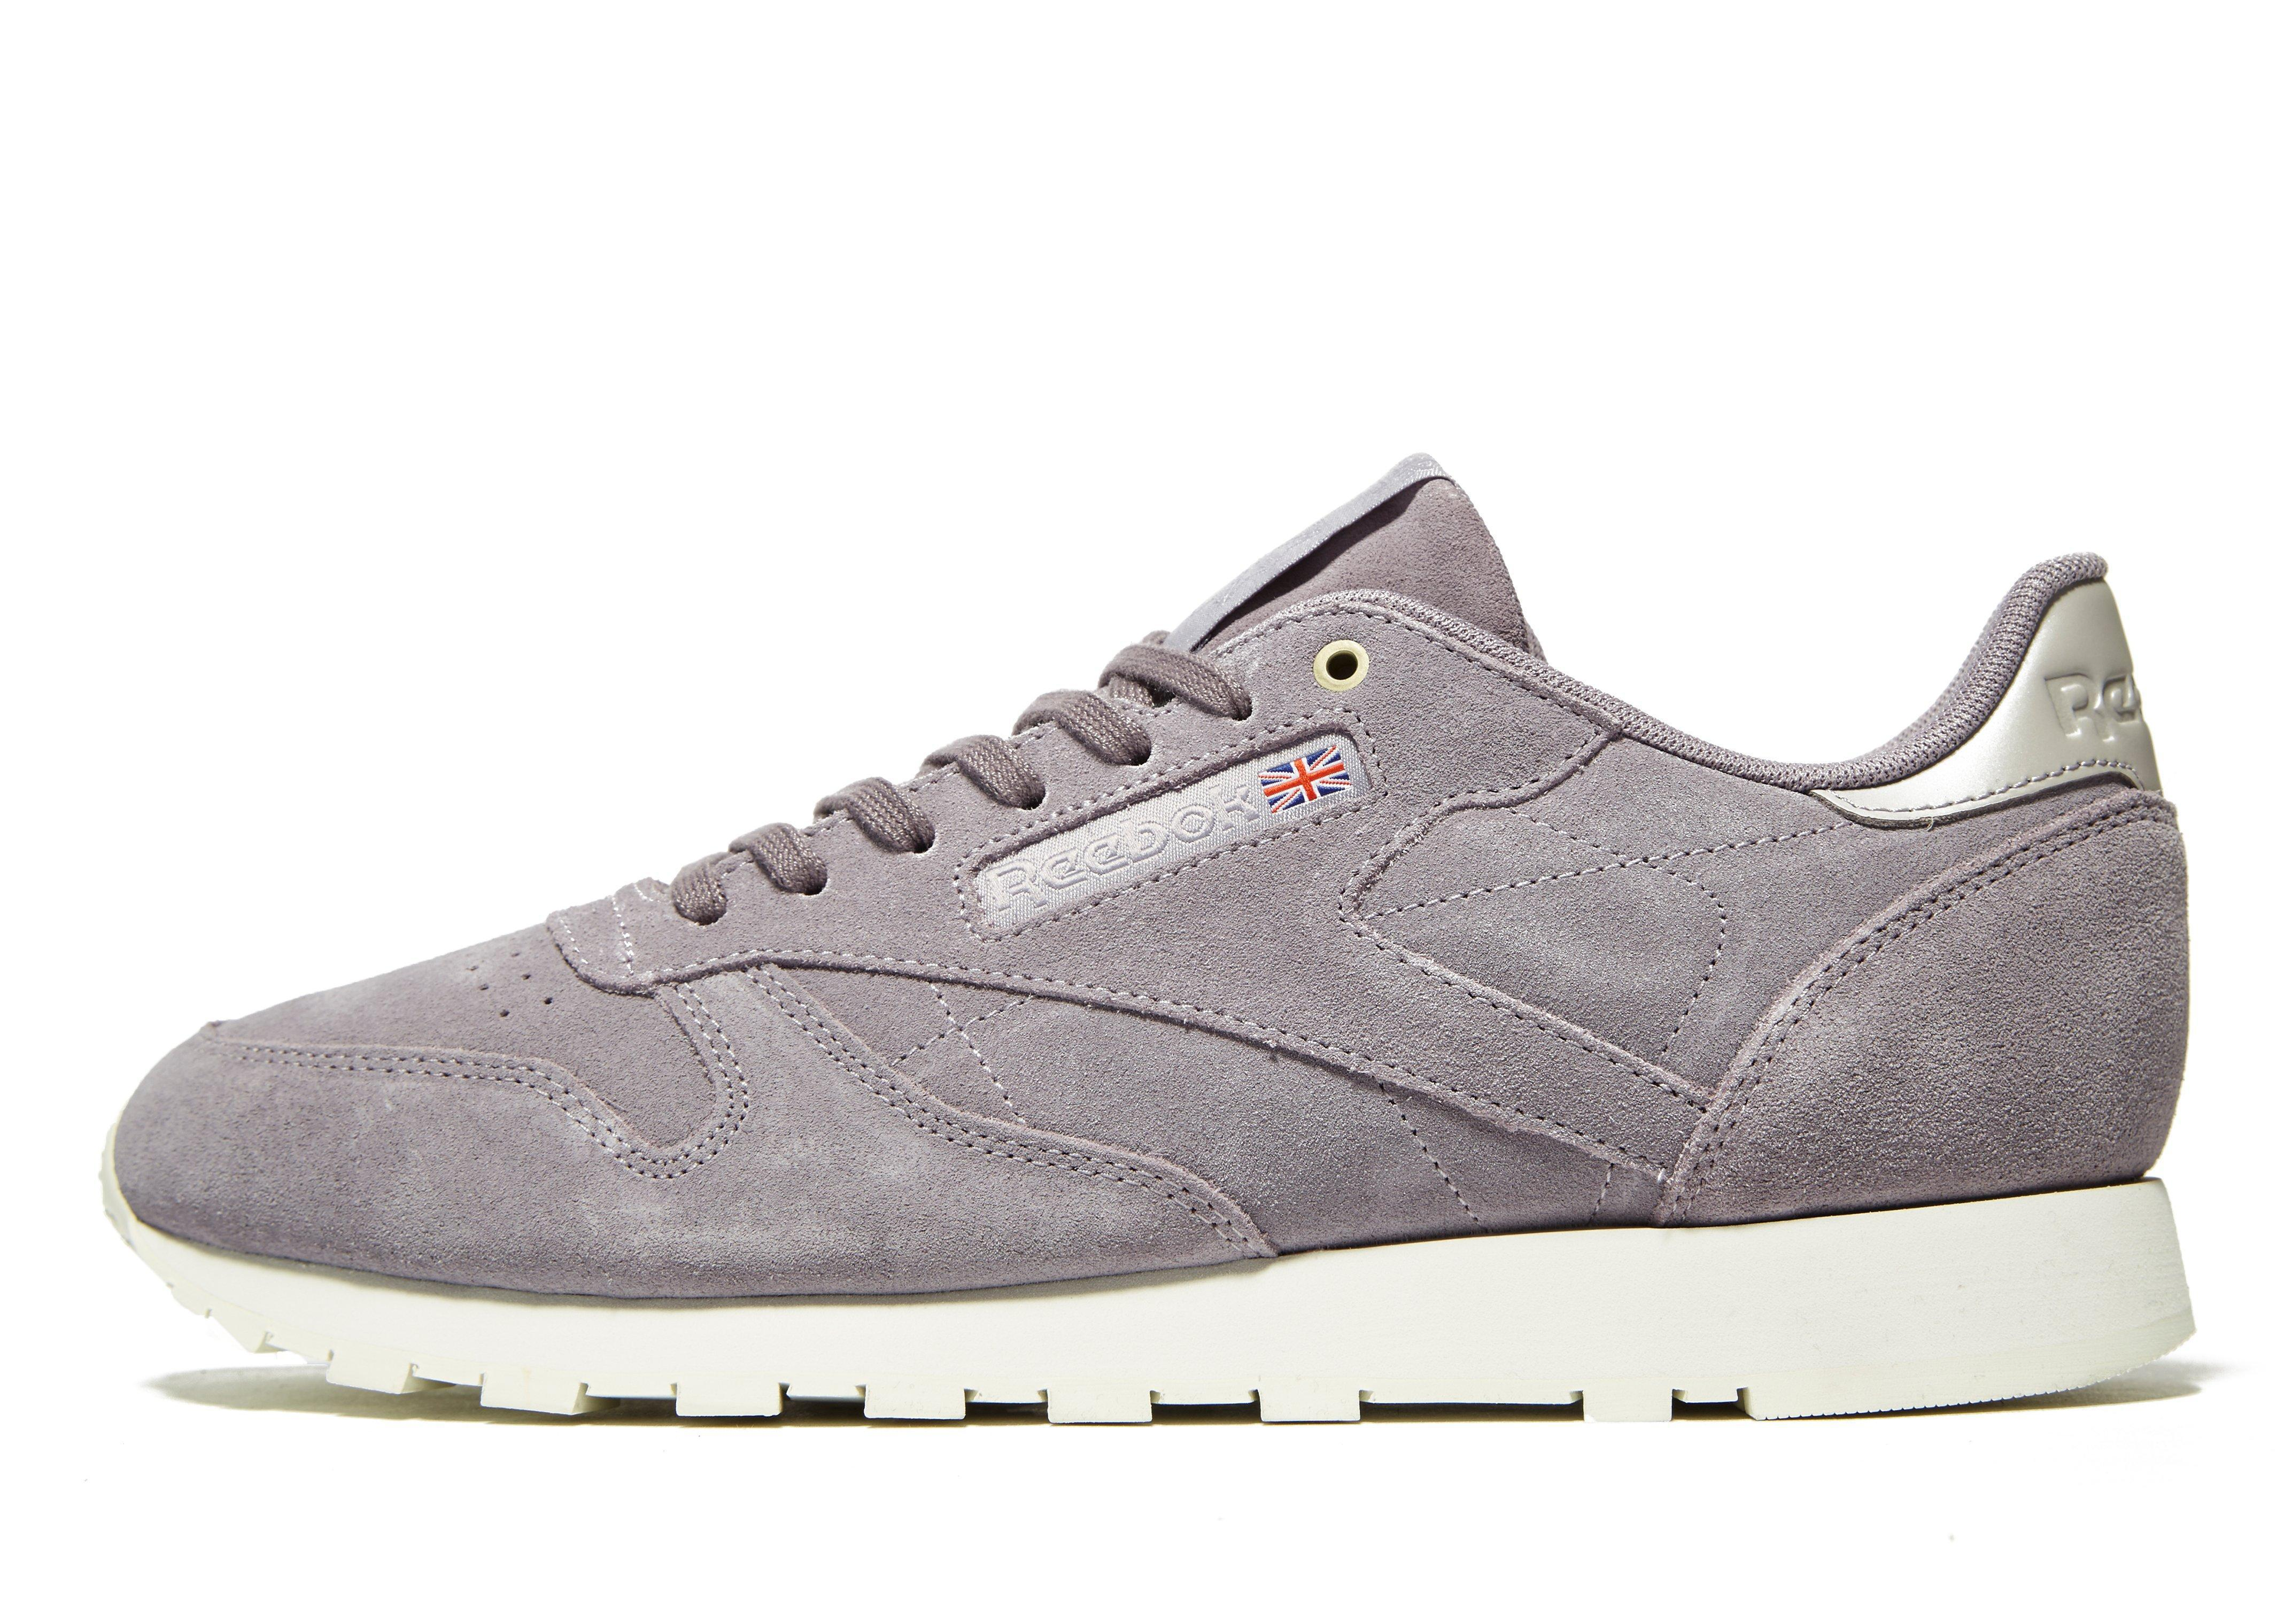 723c40db978 Lyst - Reebok Classic Leather Mcc in Gray for Men